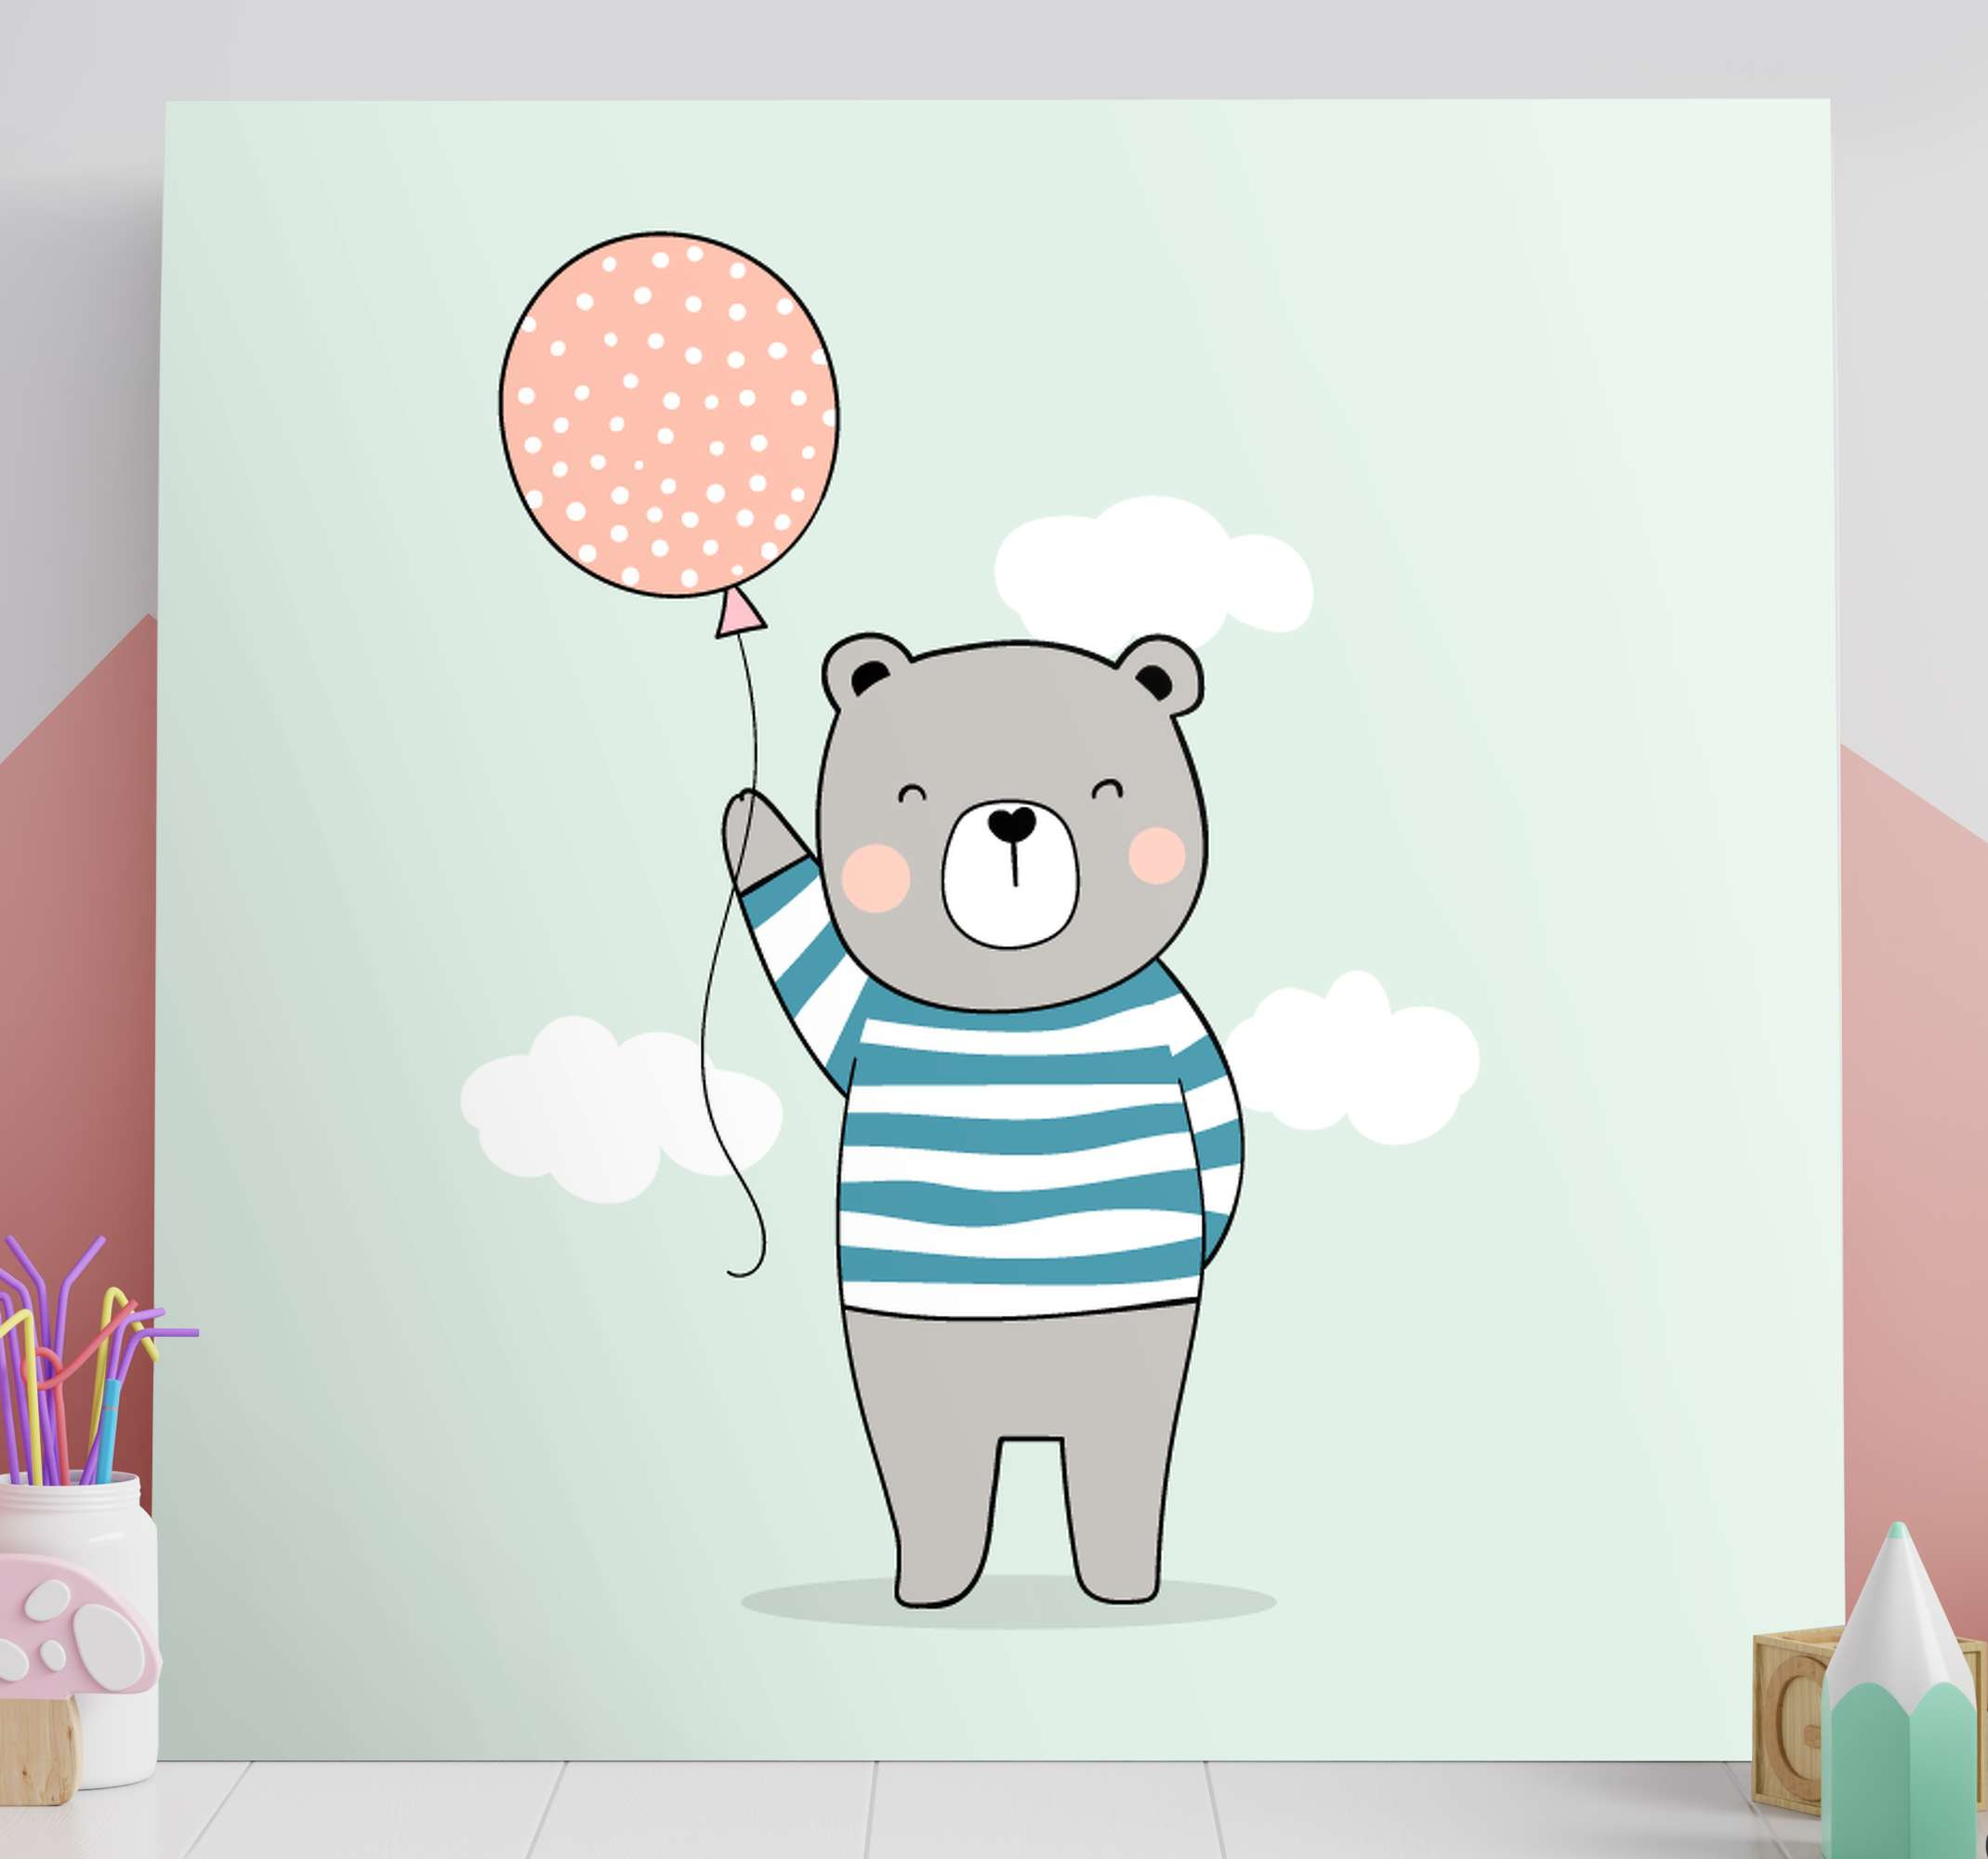 TenStickers. bebe oso peluche wall pictures for nursery. Super adorable teddy bear wall picture for nursery that both you and your little one will love! Discounts available online.